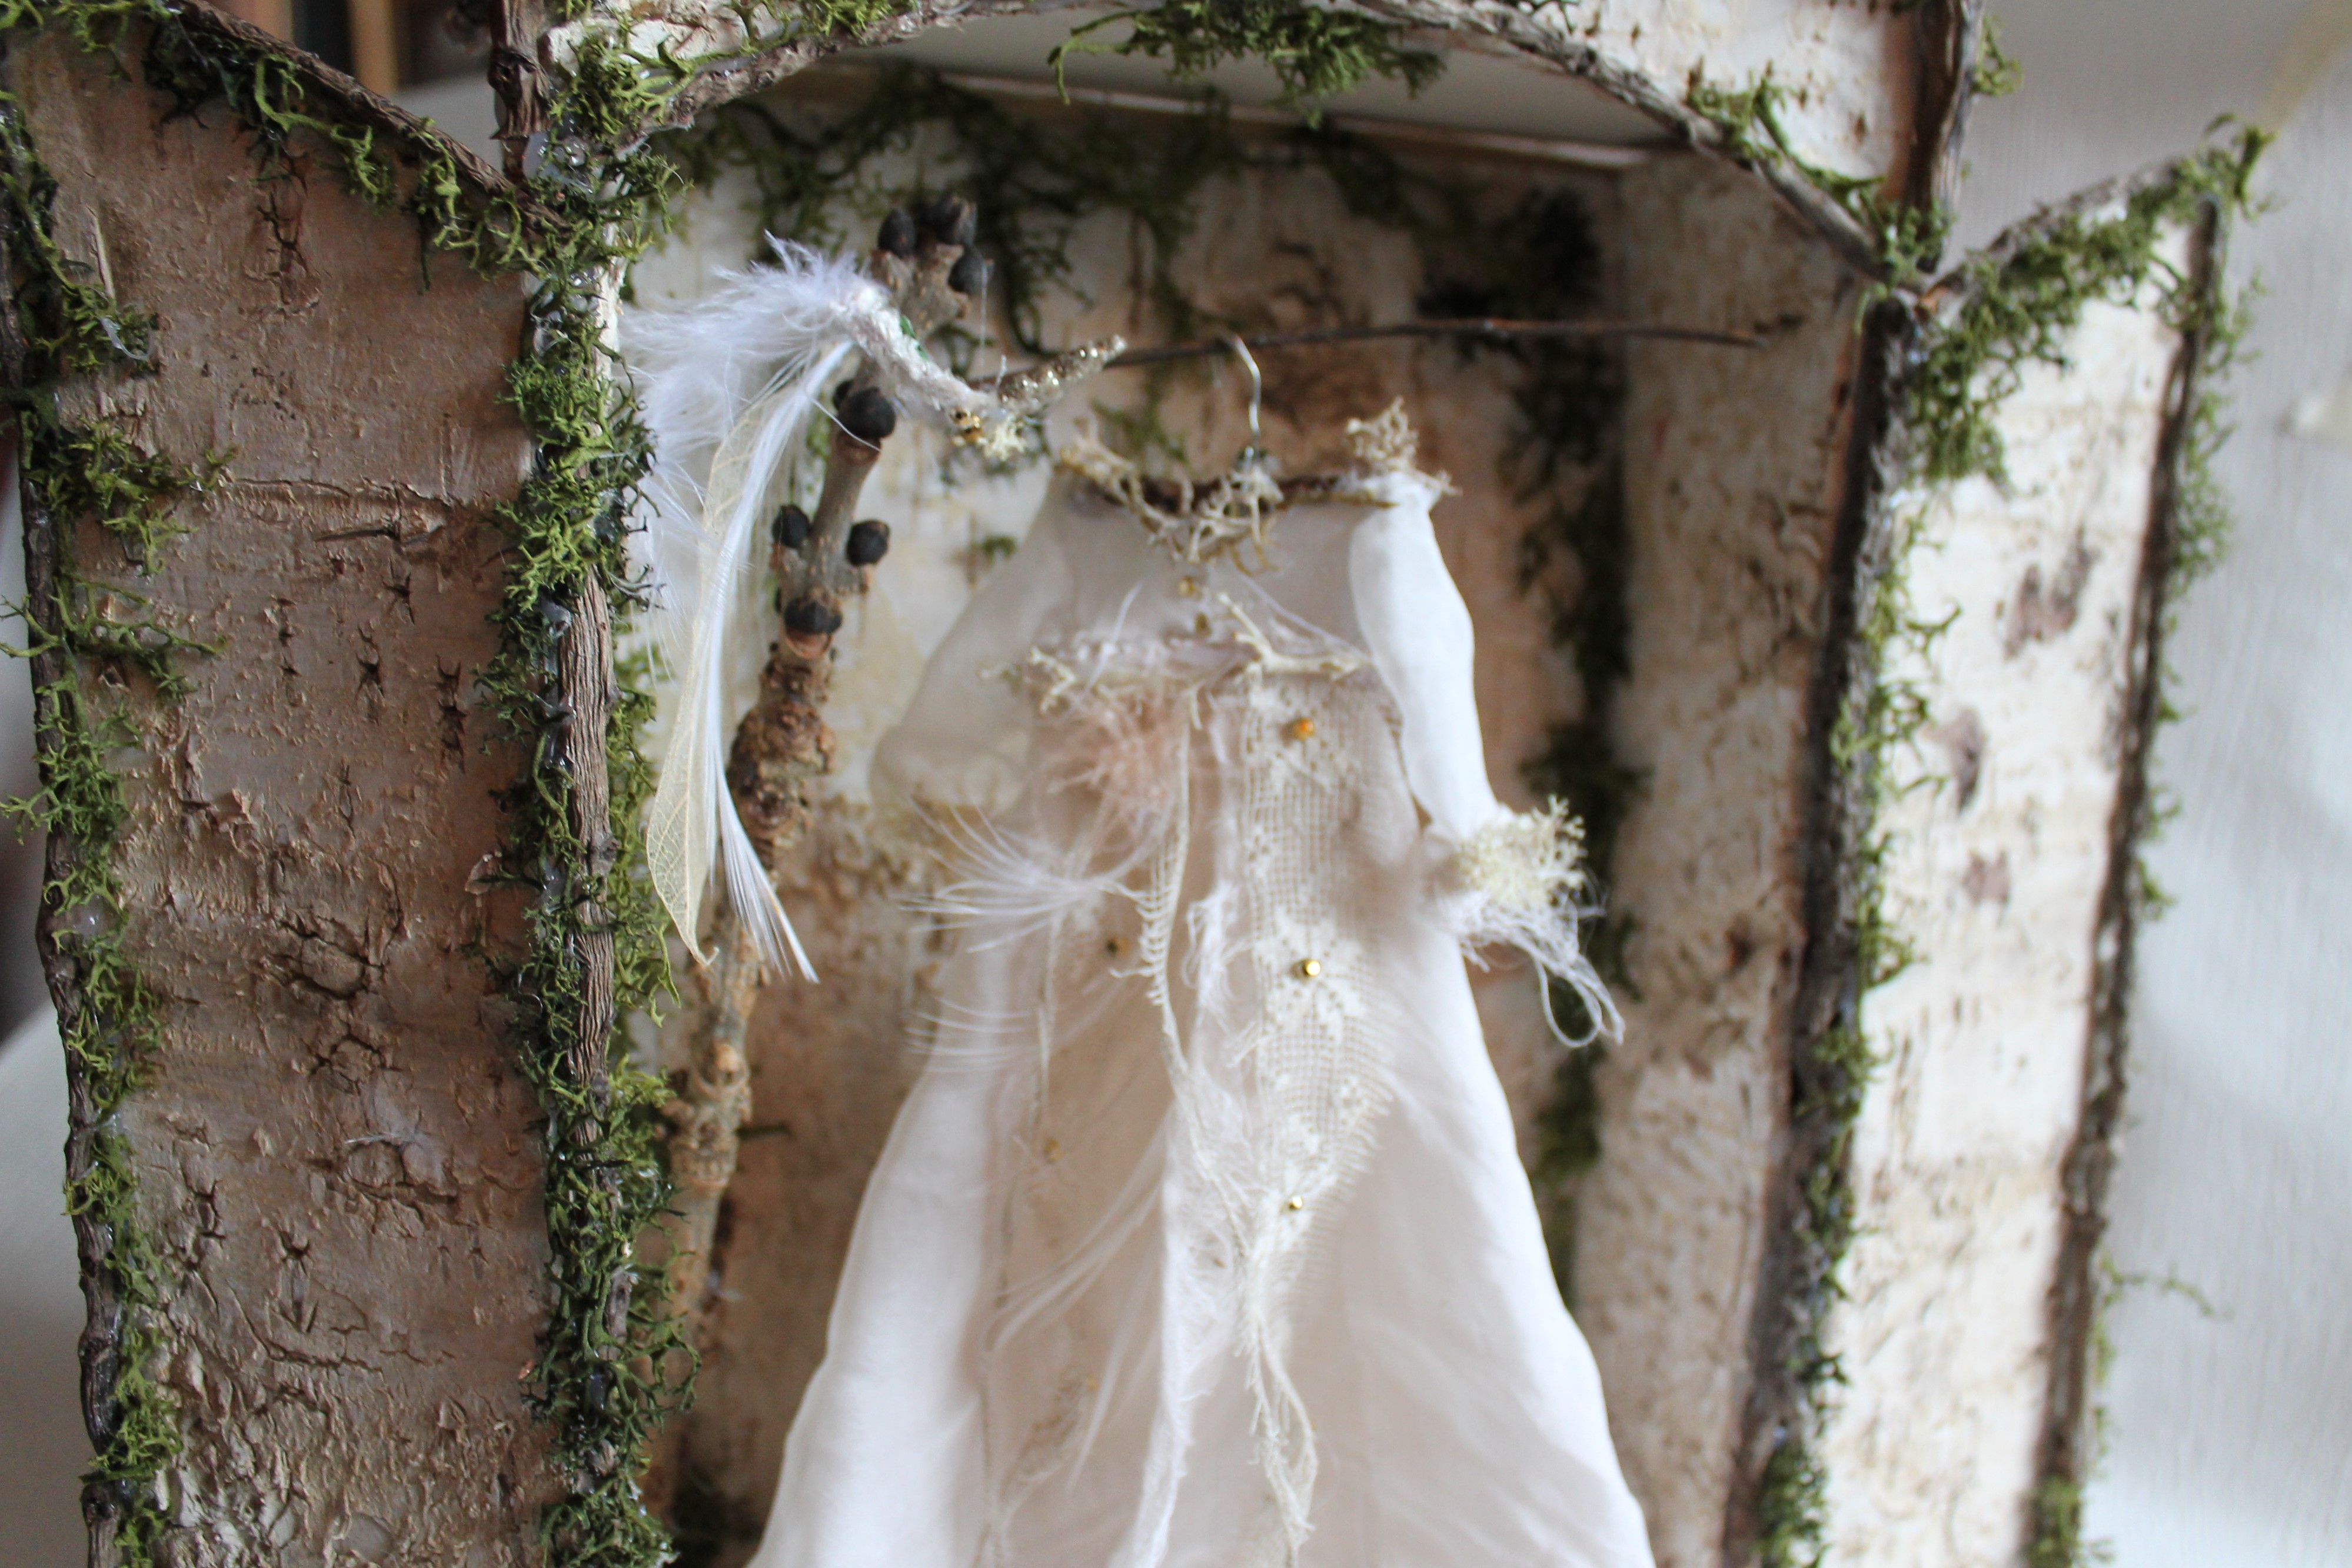 A fairy dress framed by a small doorway